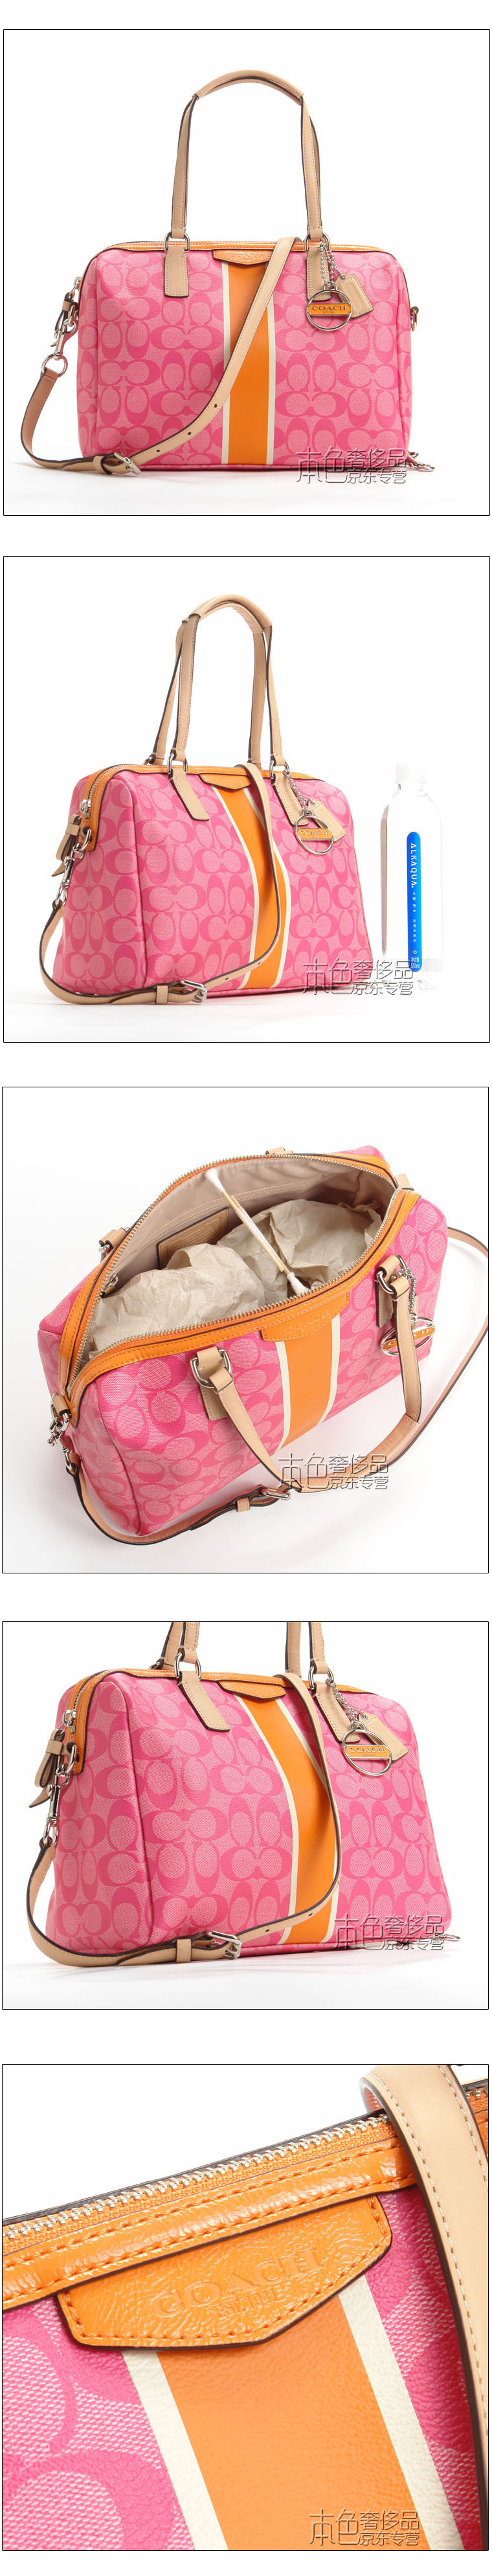 coach purse clearance outlet  20144outlet